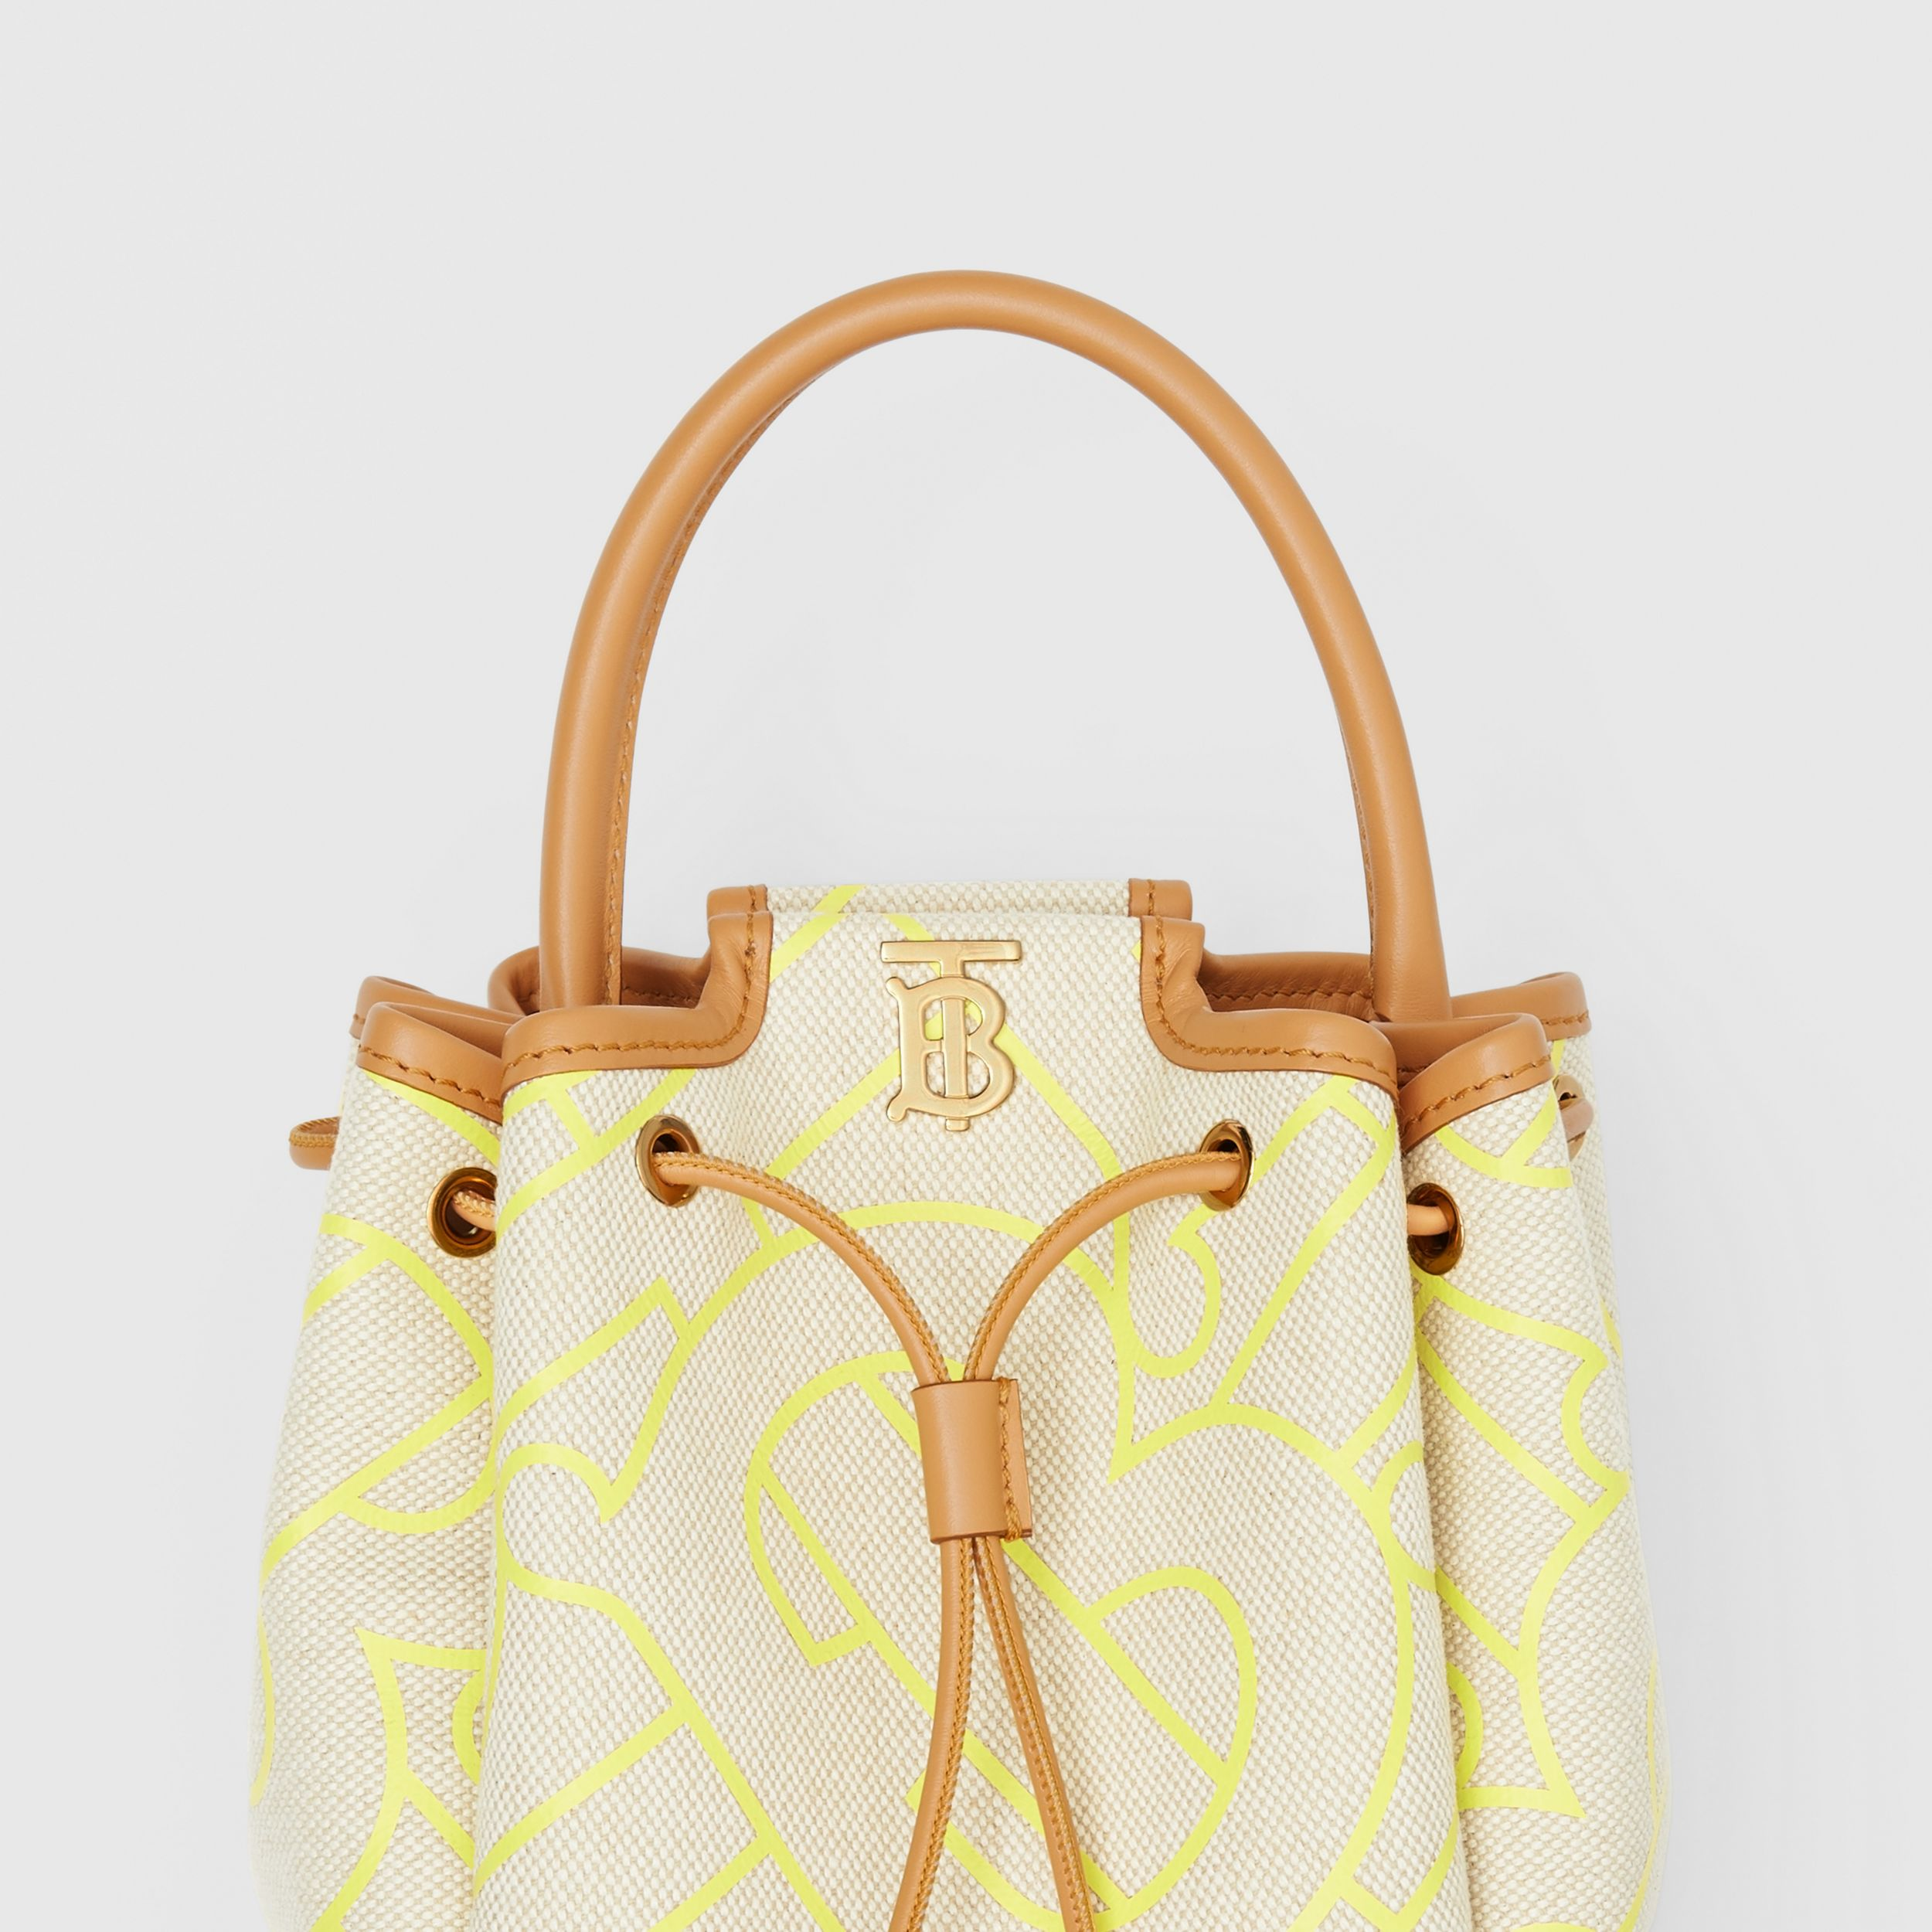 Monogram Motif Canvas and Leather Bucket Bag in Natural/yellow - Women | Burberry - 2